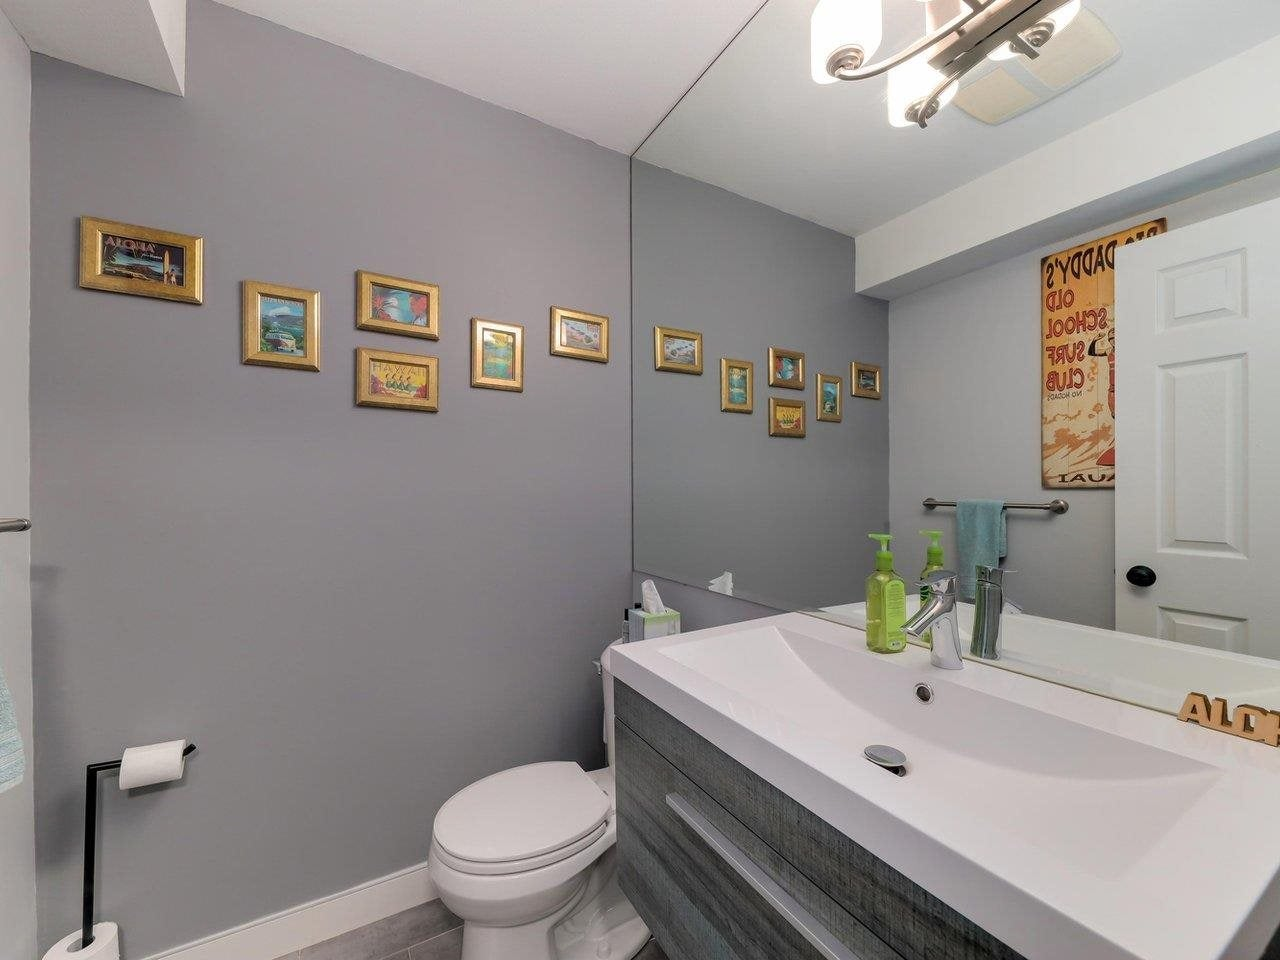 515 ST. ANDREWS AVENUE - Lower Lonsdale Townhouse for sale, 3 Bedrooms (R2590362) - #14